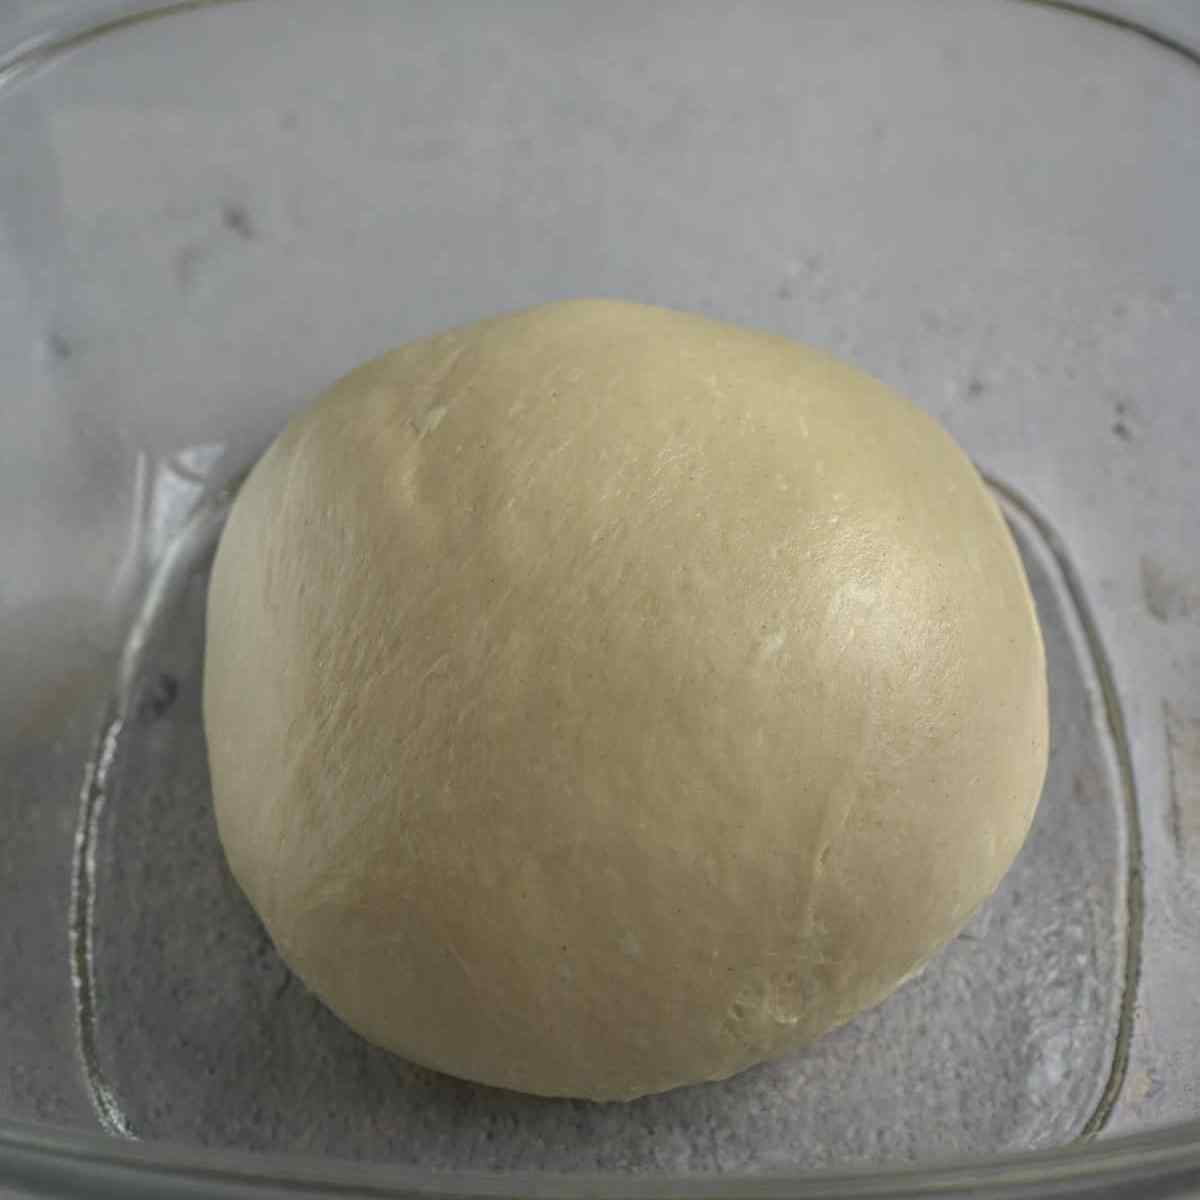 milk bun dough before first proof.